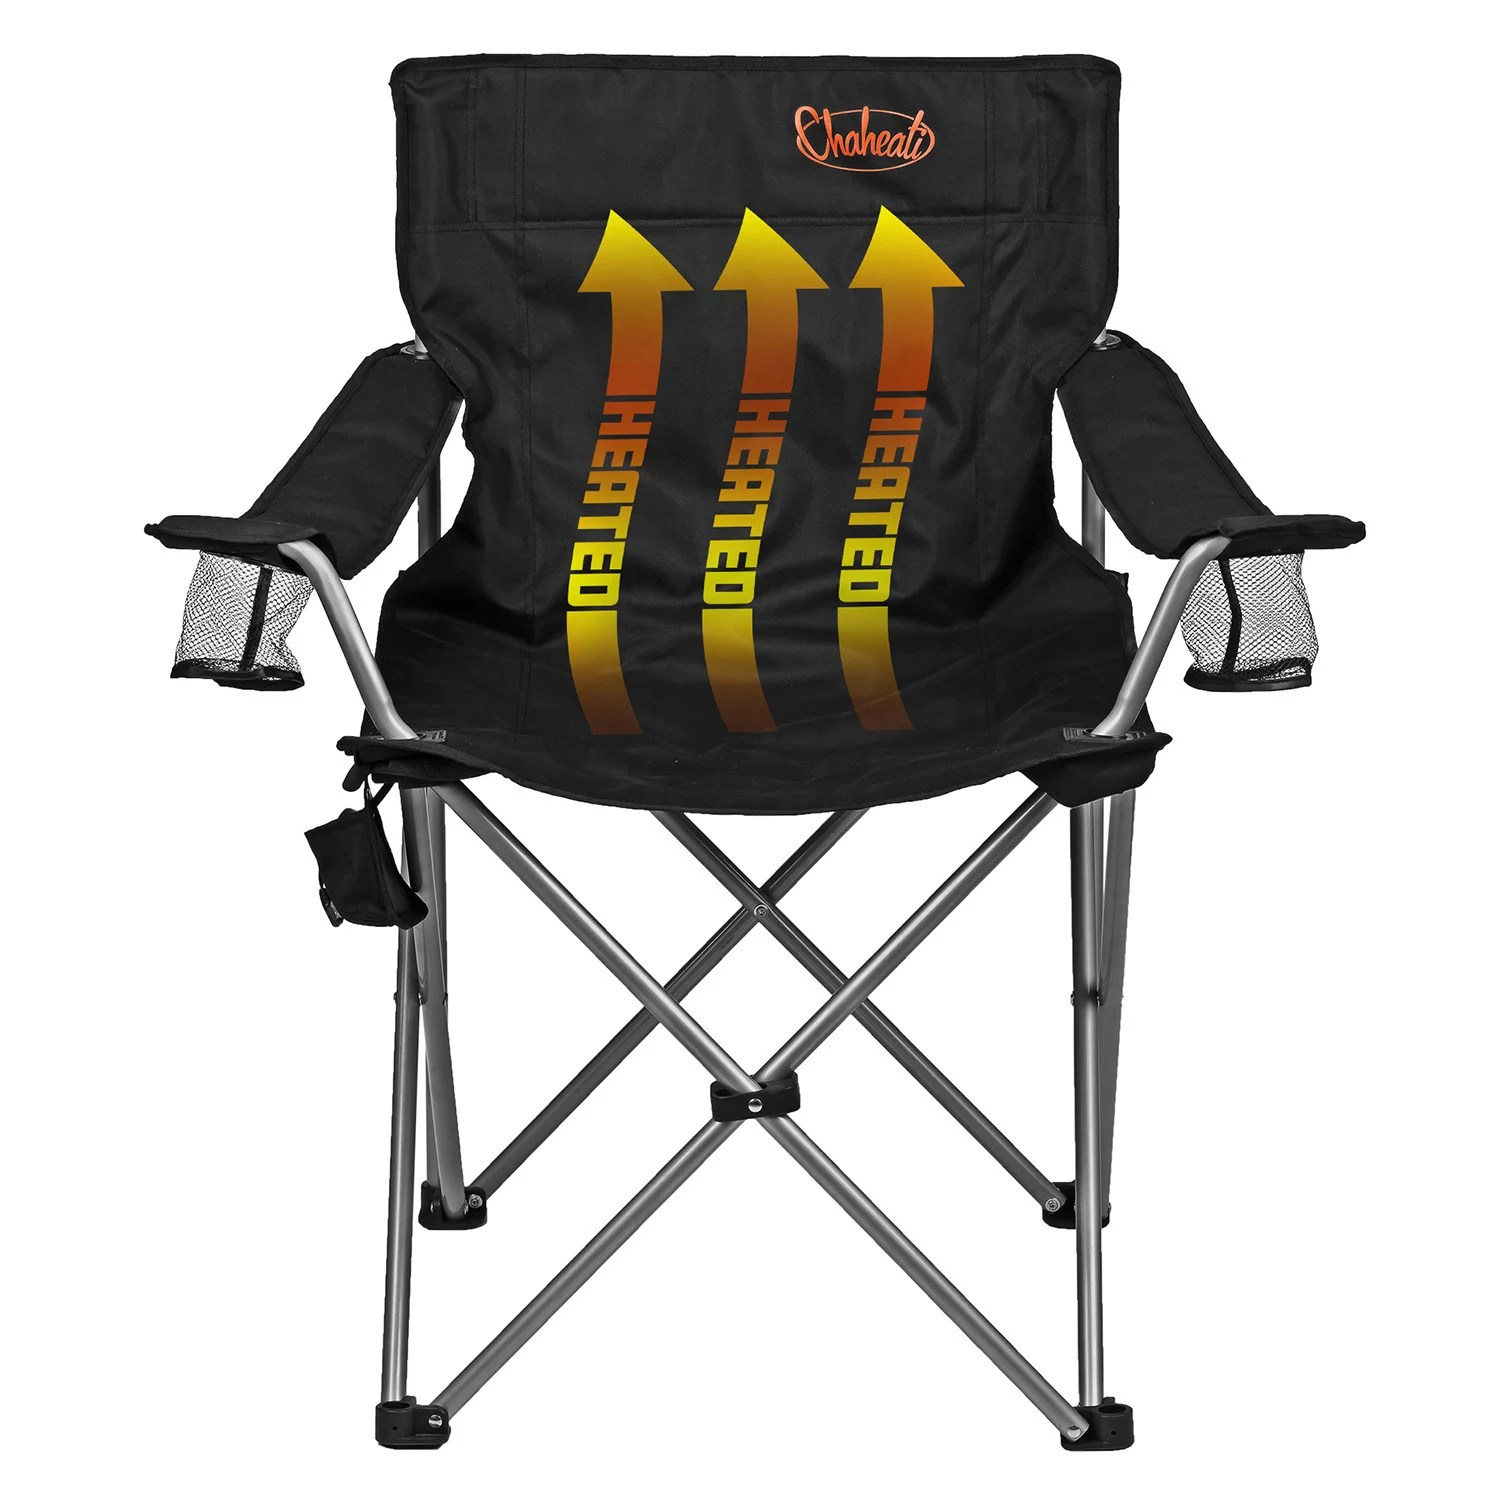 Camping Chair With Canopy Camping Chairs Kohl S